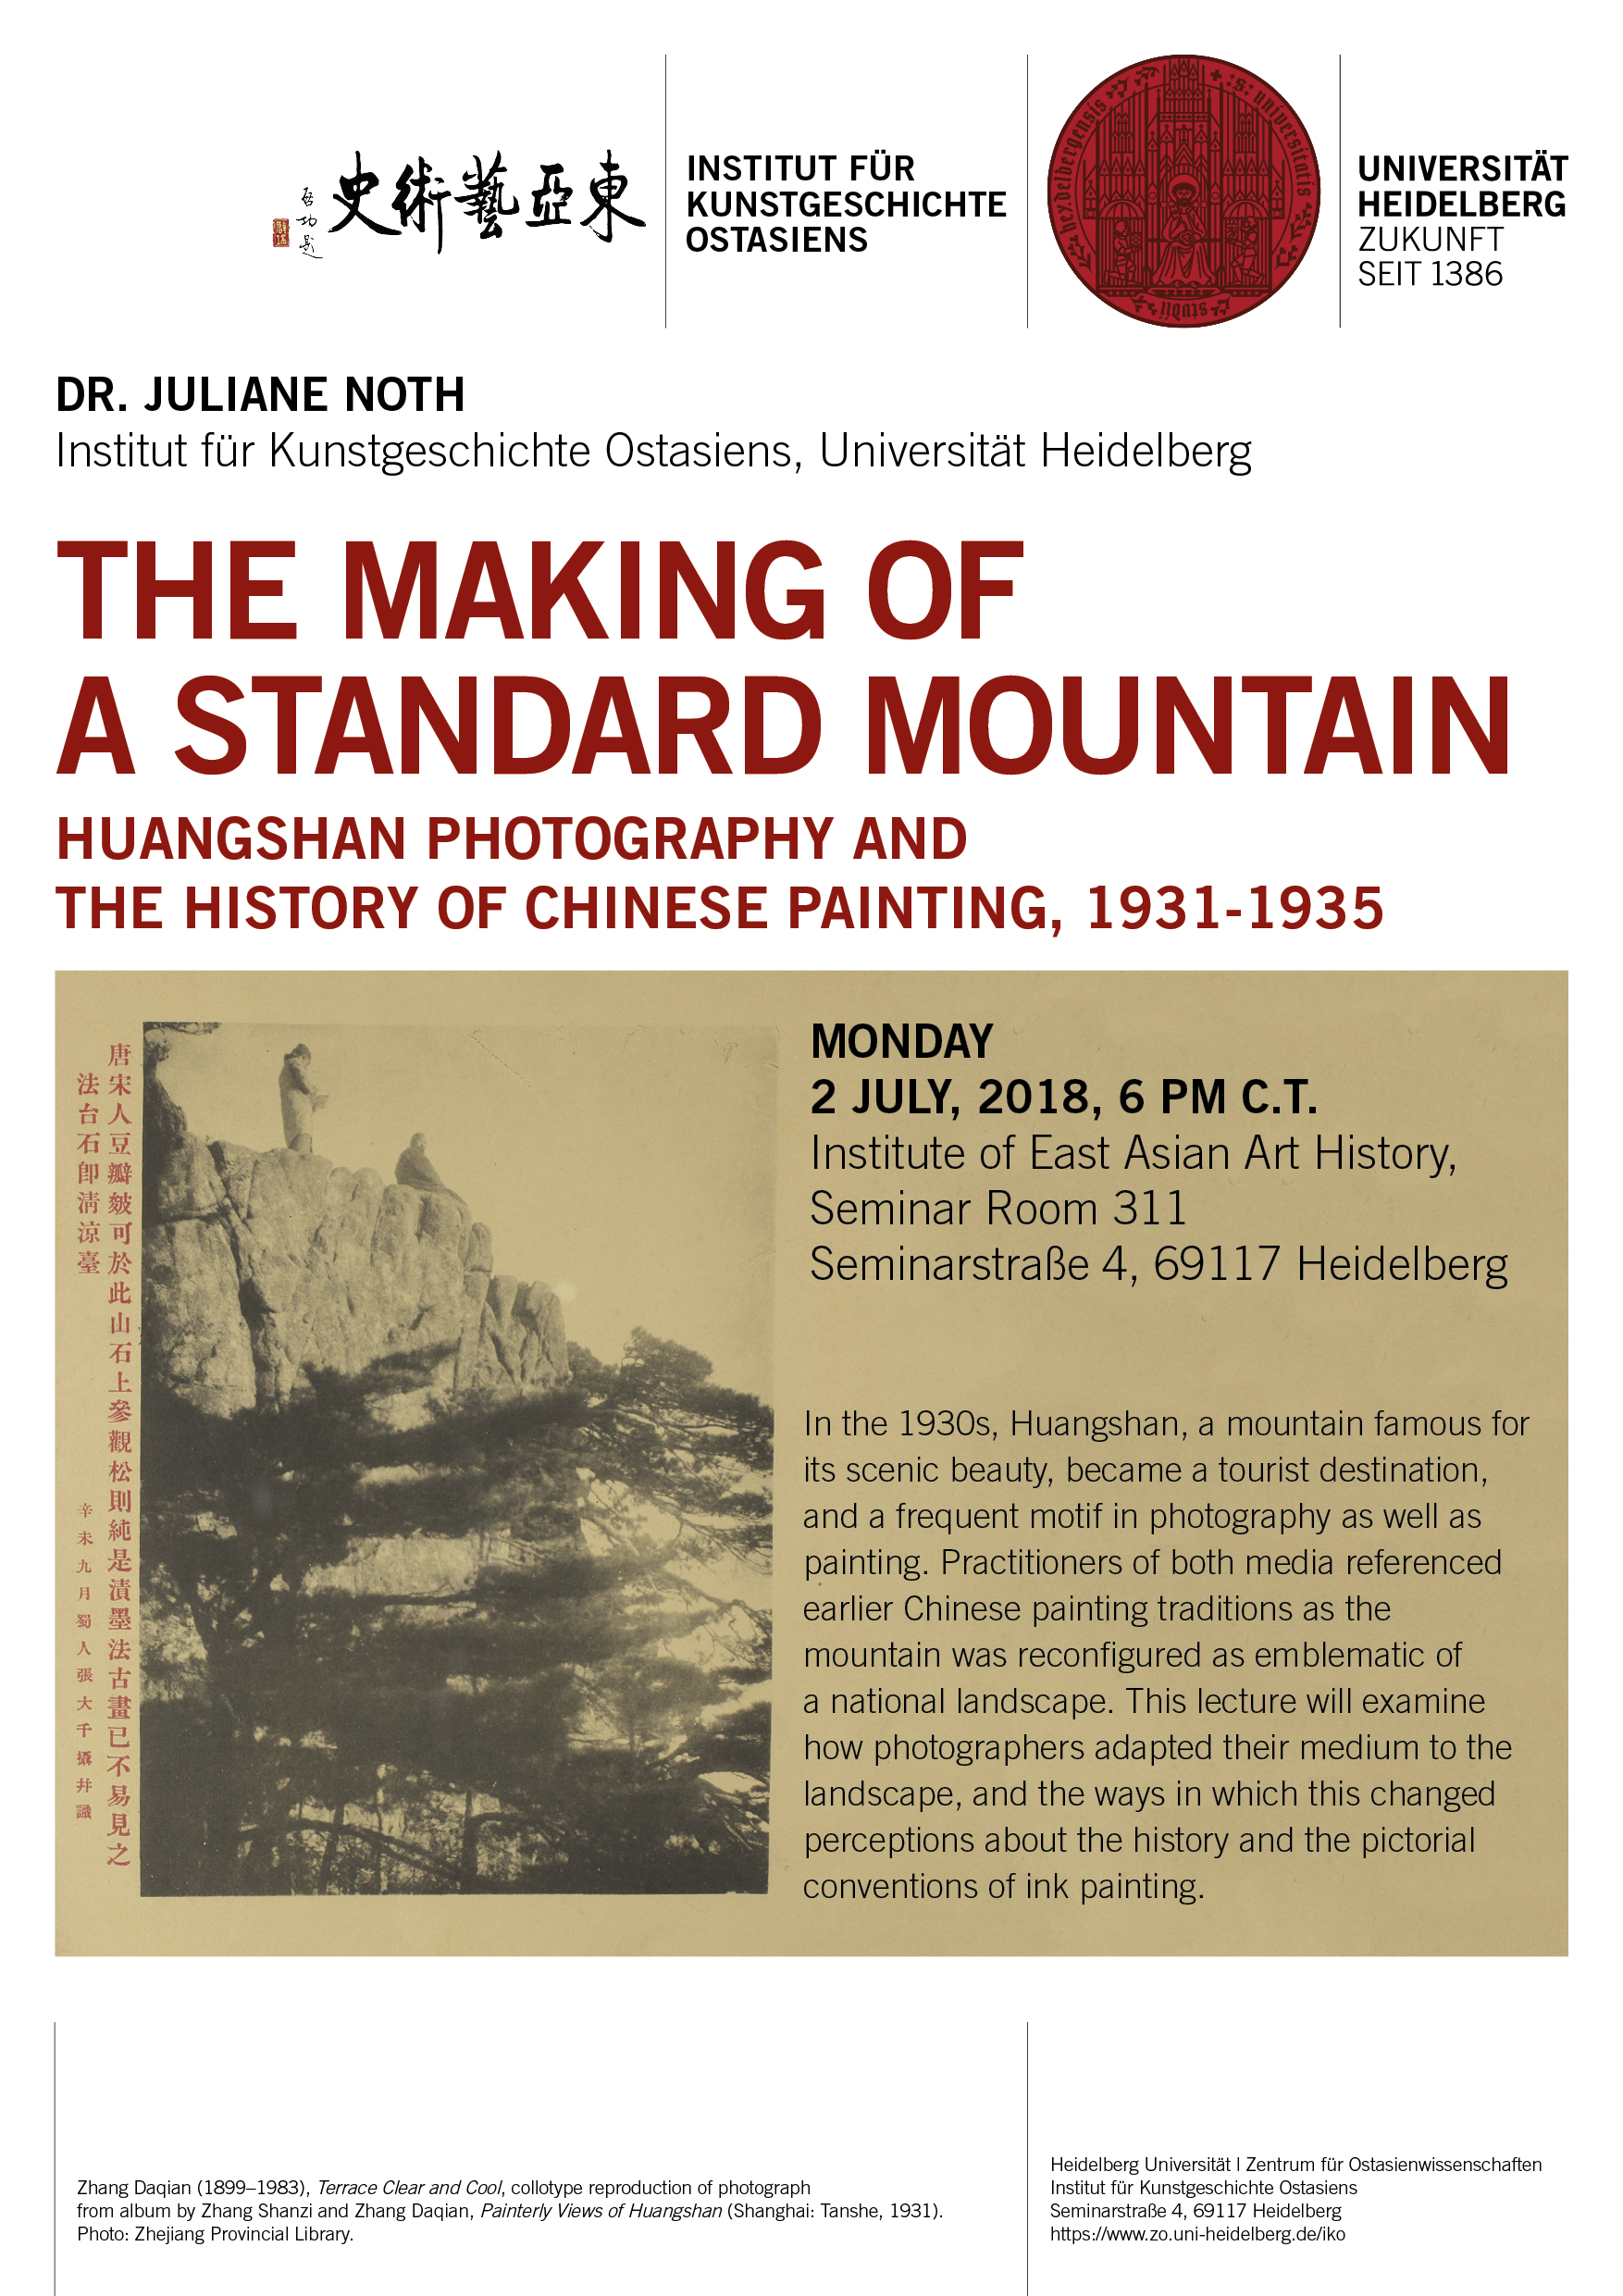 2 July, 2018 | Juliane Noth: The Making of A Standard Mountain. Huangshan Photography and the History of Chinese Painting, 1931-1935